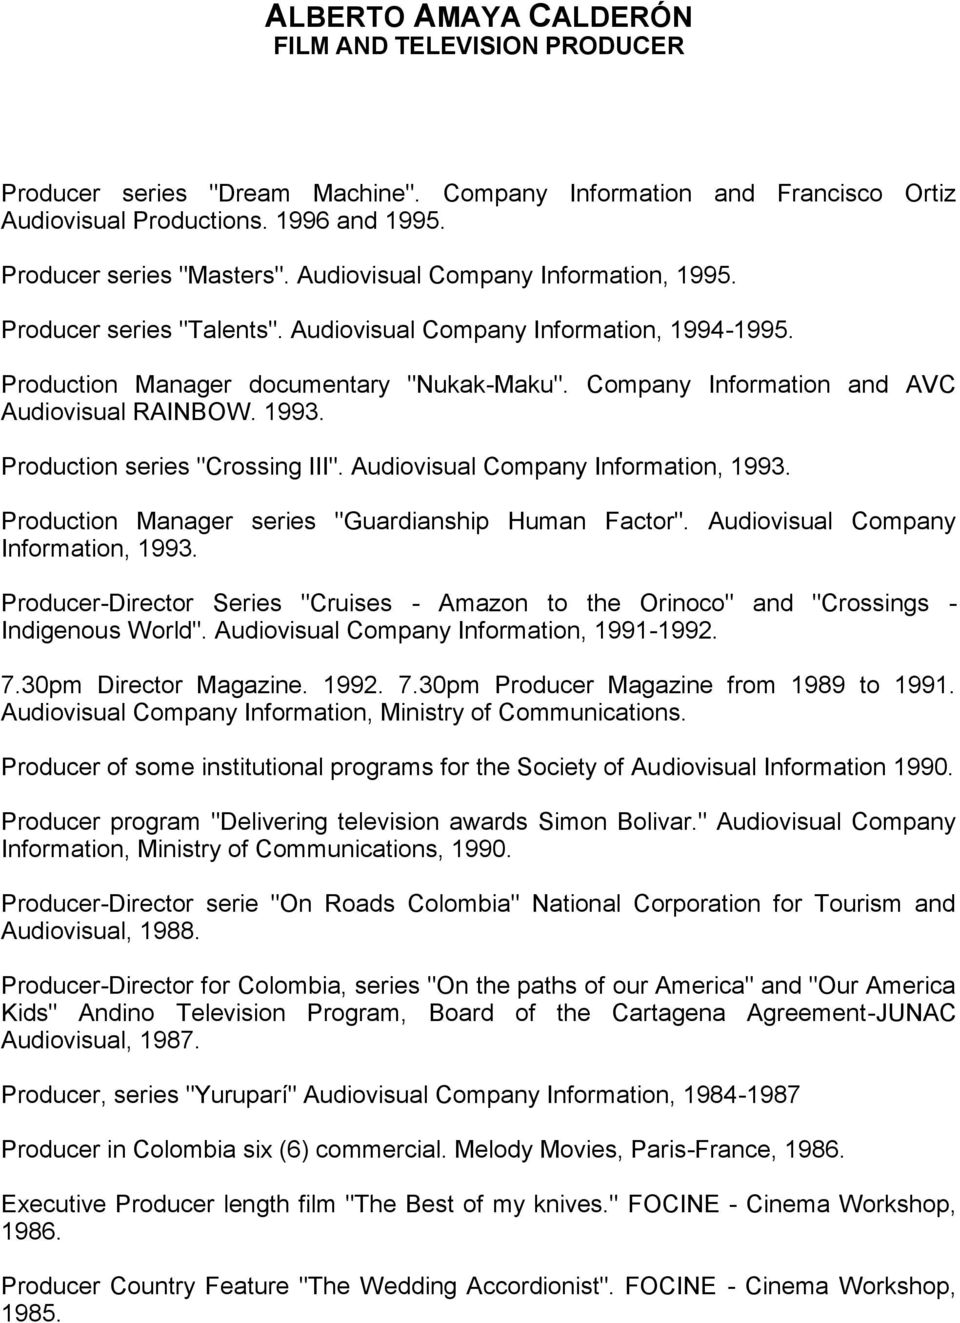 "Production series ""Crossing III"". Audiovisual Company Information, 1993. Production Manager series ""Guardianship Human Factor"". Audiovisual Company Information, 1993. Producer-Director Series ""Cruises - Amazon to the Orinoco"" and ""Crossings - Indigenous World""."